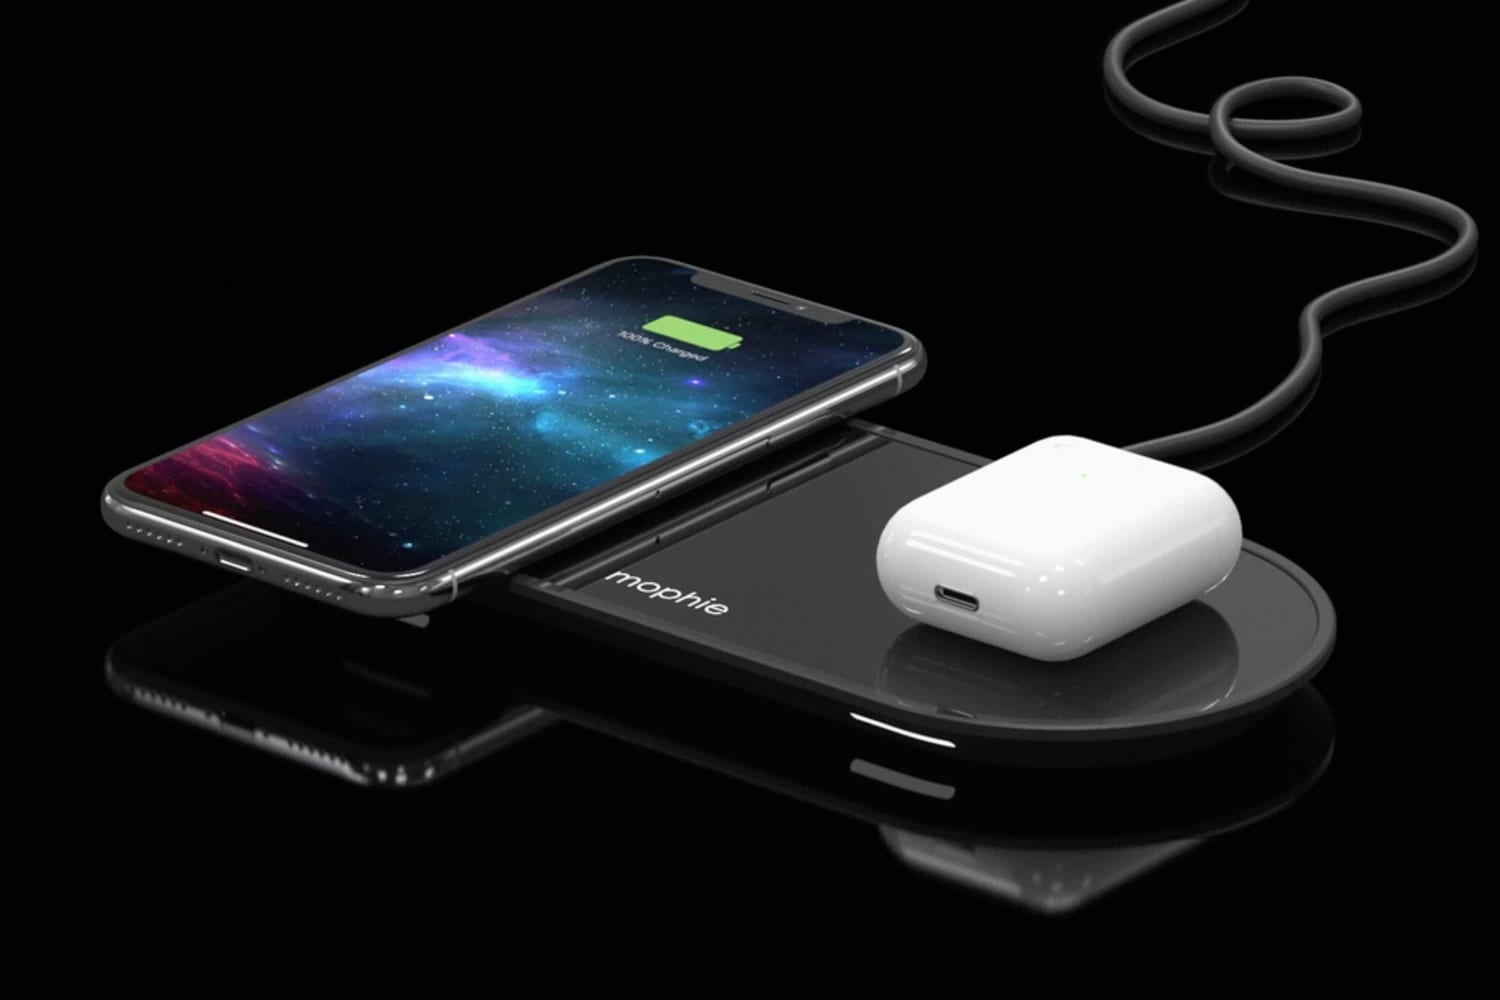 apple-acknowledges-qi-wireless-charging-issues-working-on-fix-20201204-8